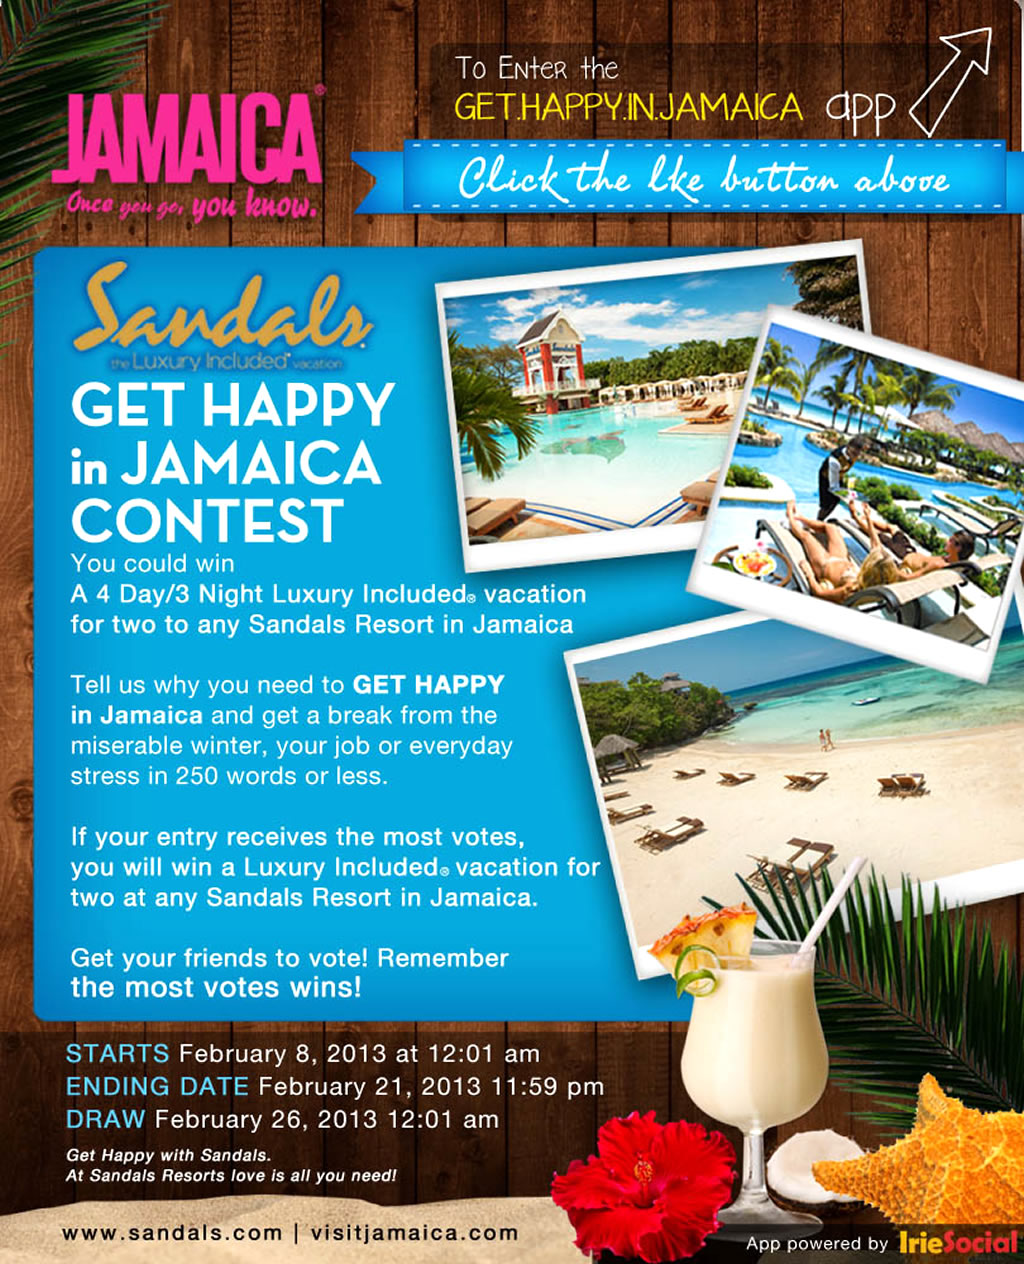 Facebook Contest of Get Happy In Jamaica Marketing Campaign by Jamaica Tourist Board